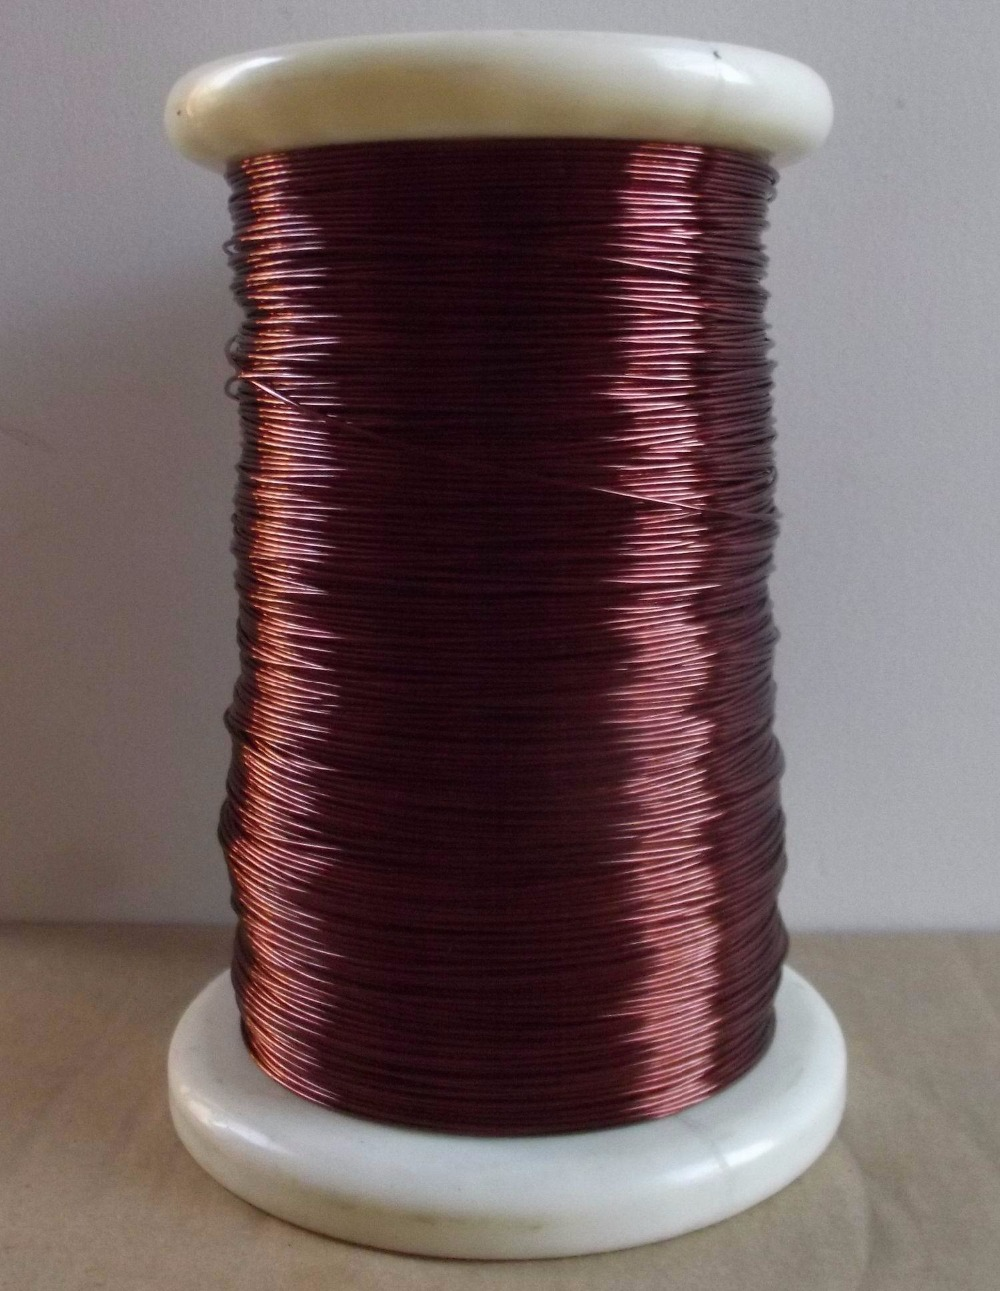 0.65mm 100meters 155deg Enameled Copper Wire Magnetic Coil Winding Red Magnet Wire